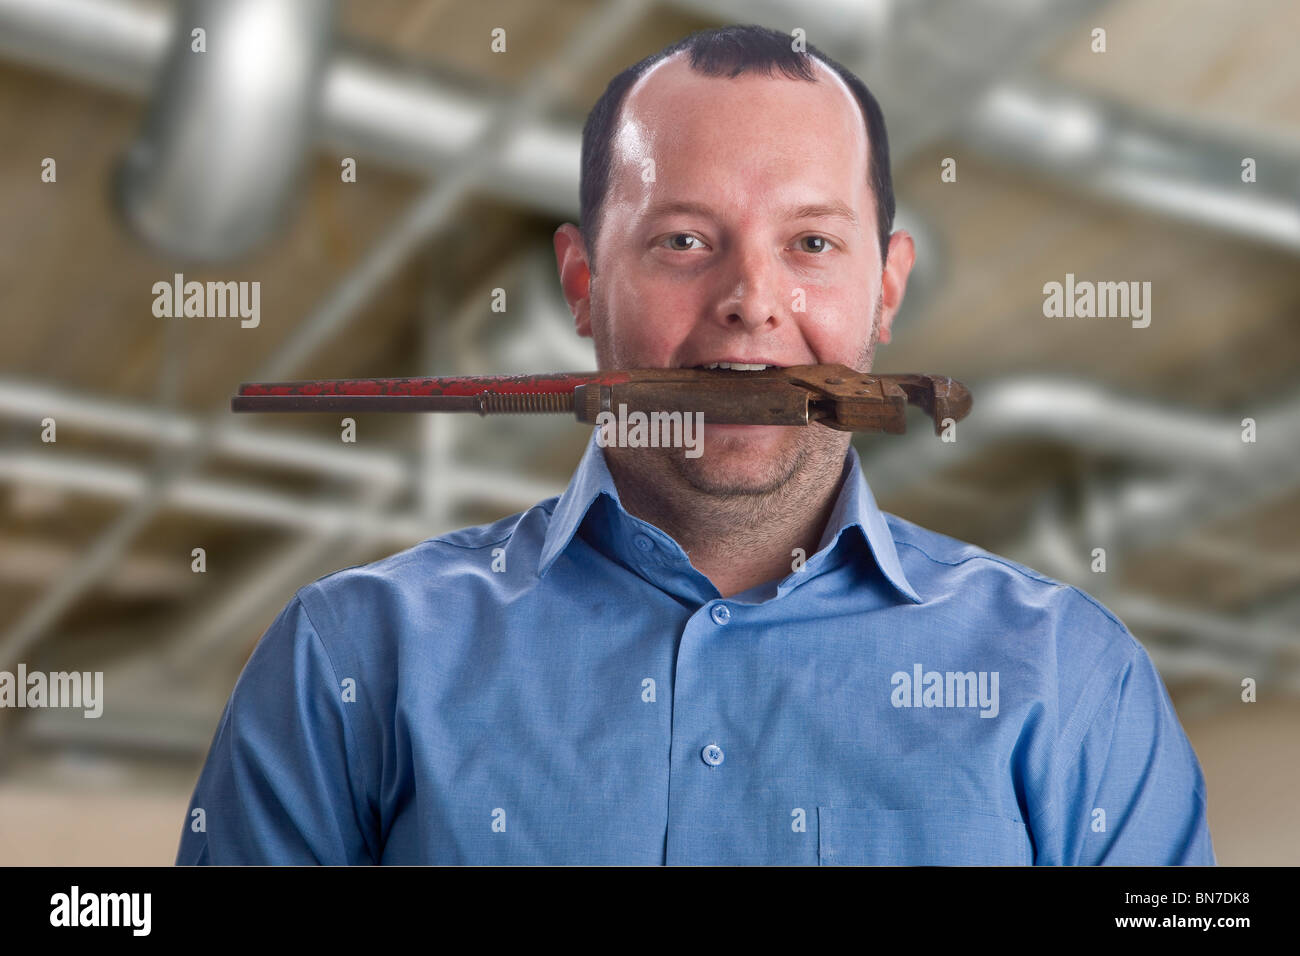 Young heating and sanitary craftsman with a pipe wrench in his mouth - Stock Image